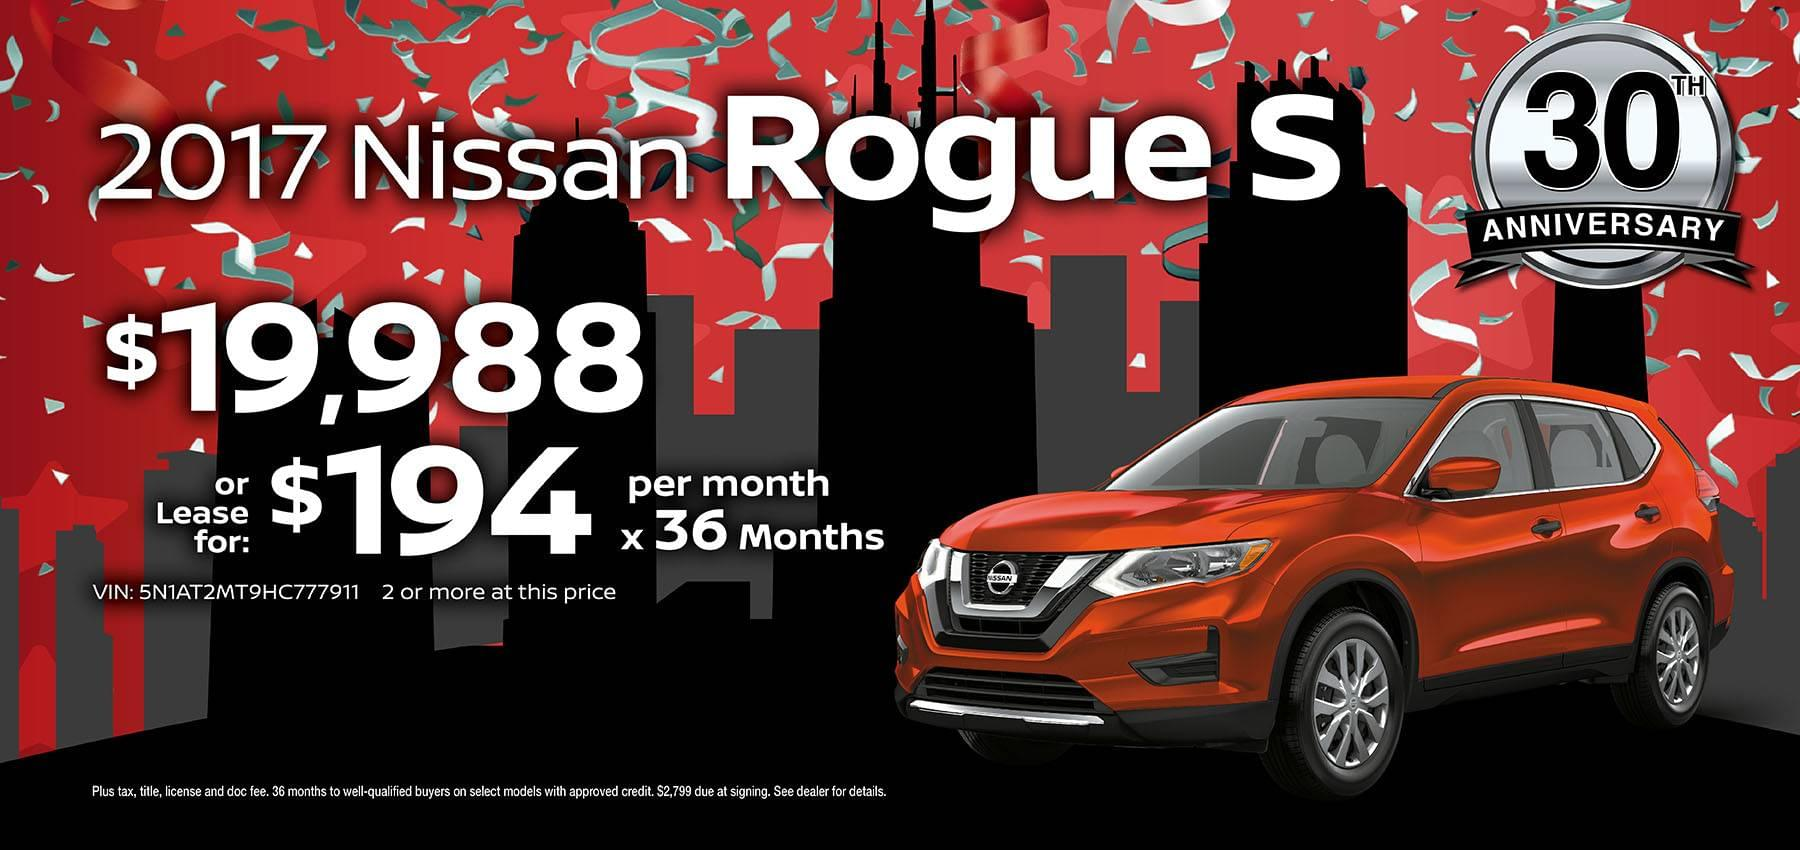 2017 Nissan Rogue June Sale at Berman Nissan of Chicago